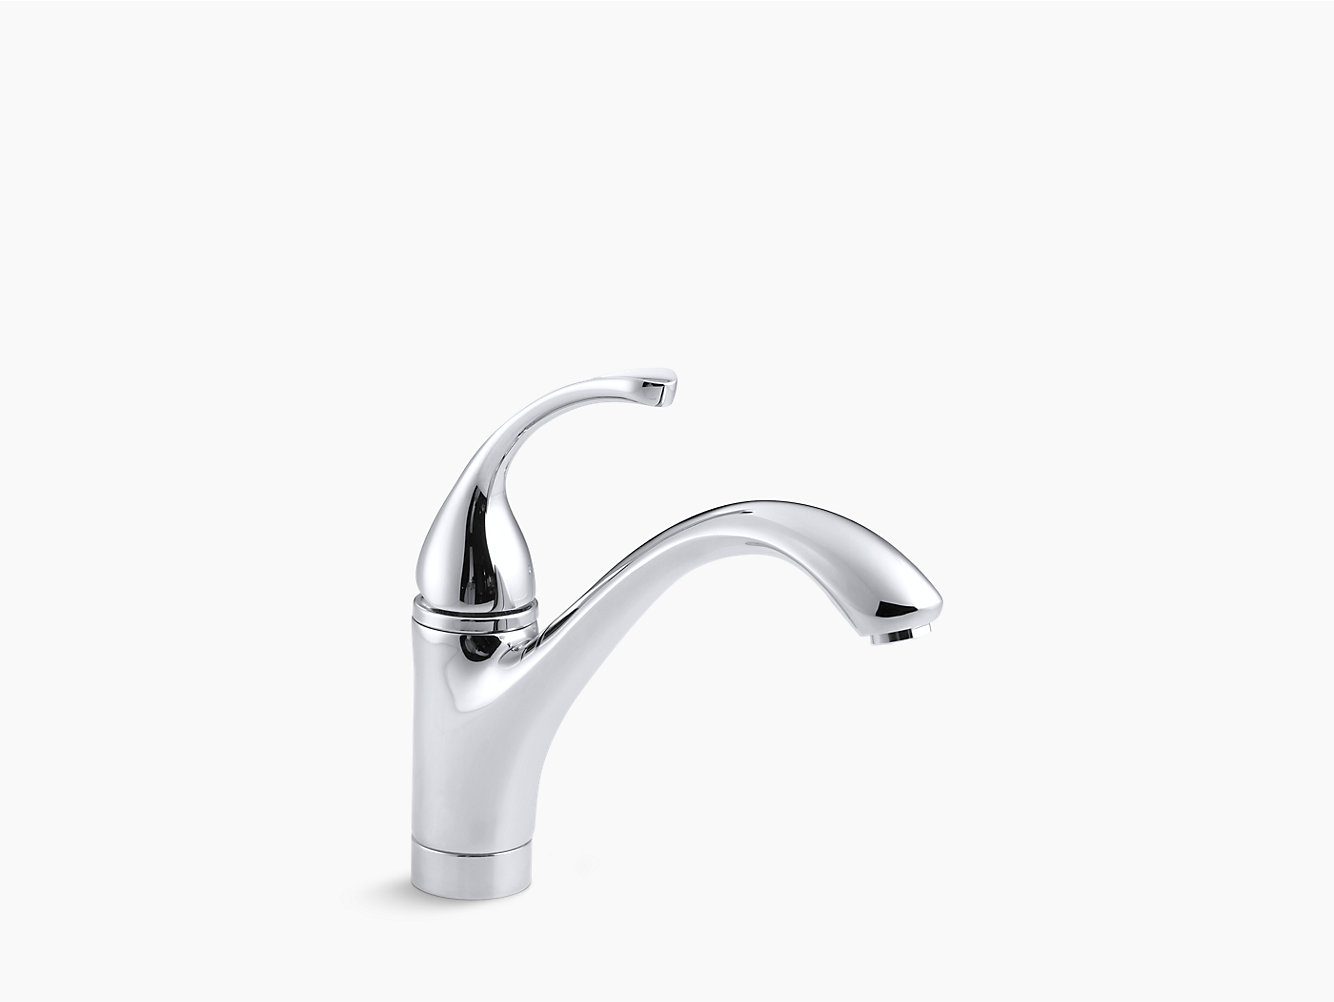 Forté Single-Handle Kitchen Sink Faucet | K-10415 | KOHLER